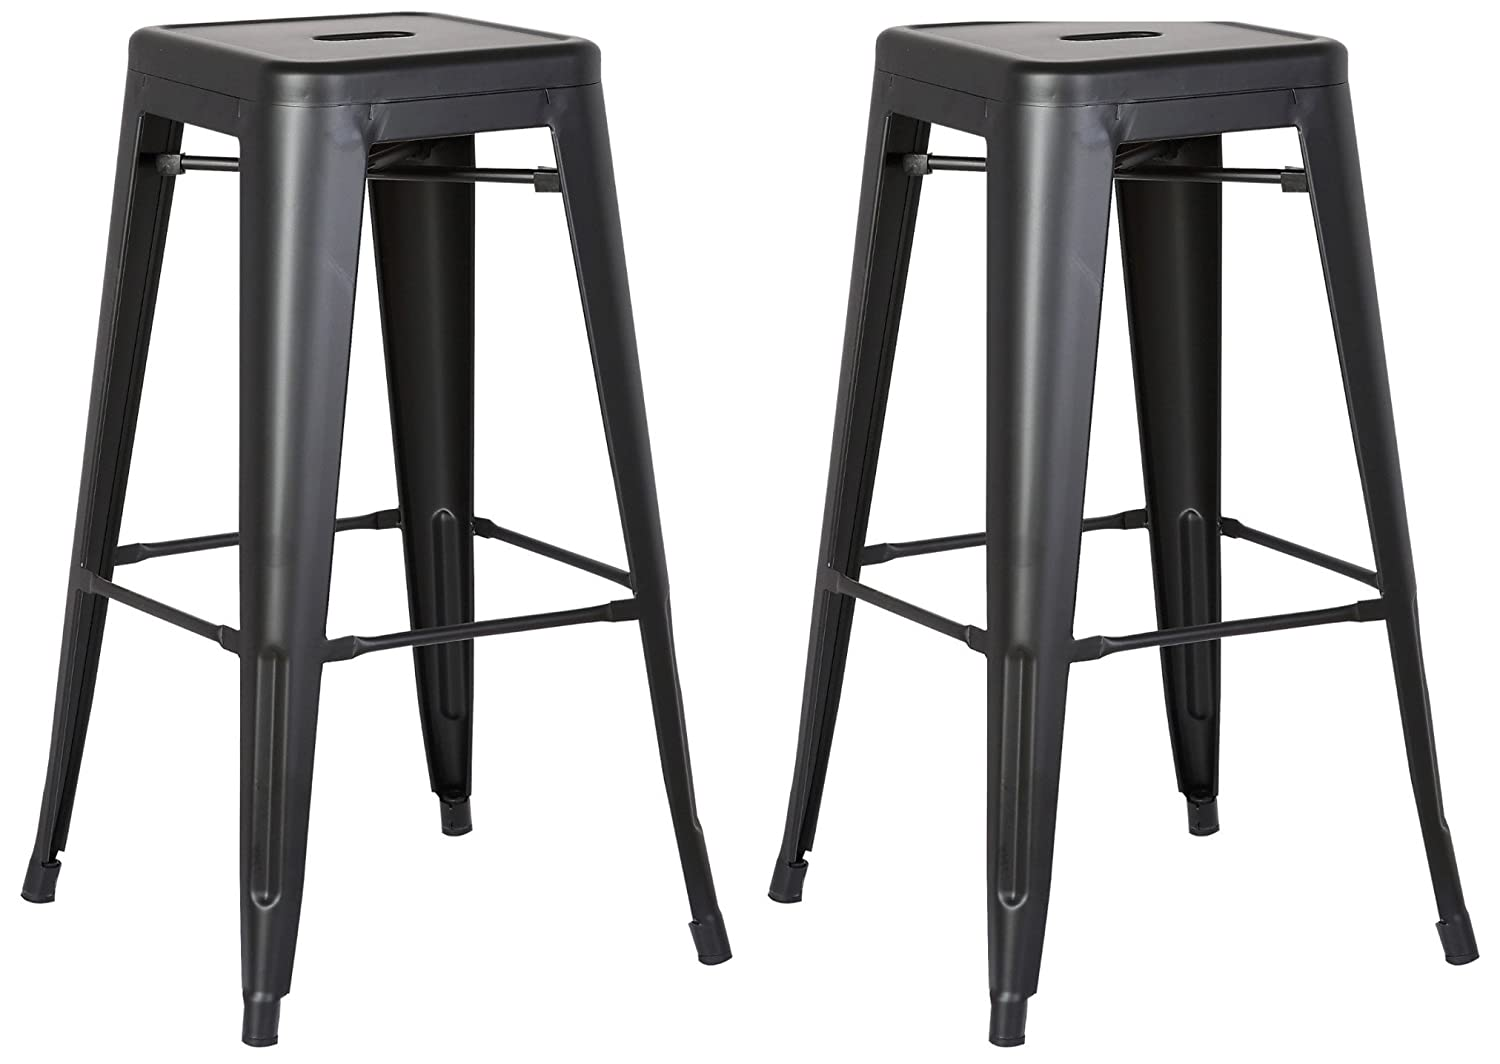 "AC Pacific Modern Backless Light Weight Industrial Metal Barstool 4 Leg Design, 24"" Seat Bar Stools (Set of 2), Matte Black Finish"